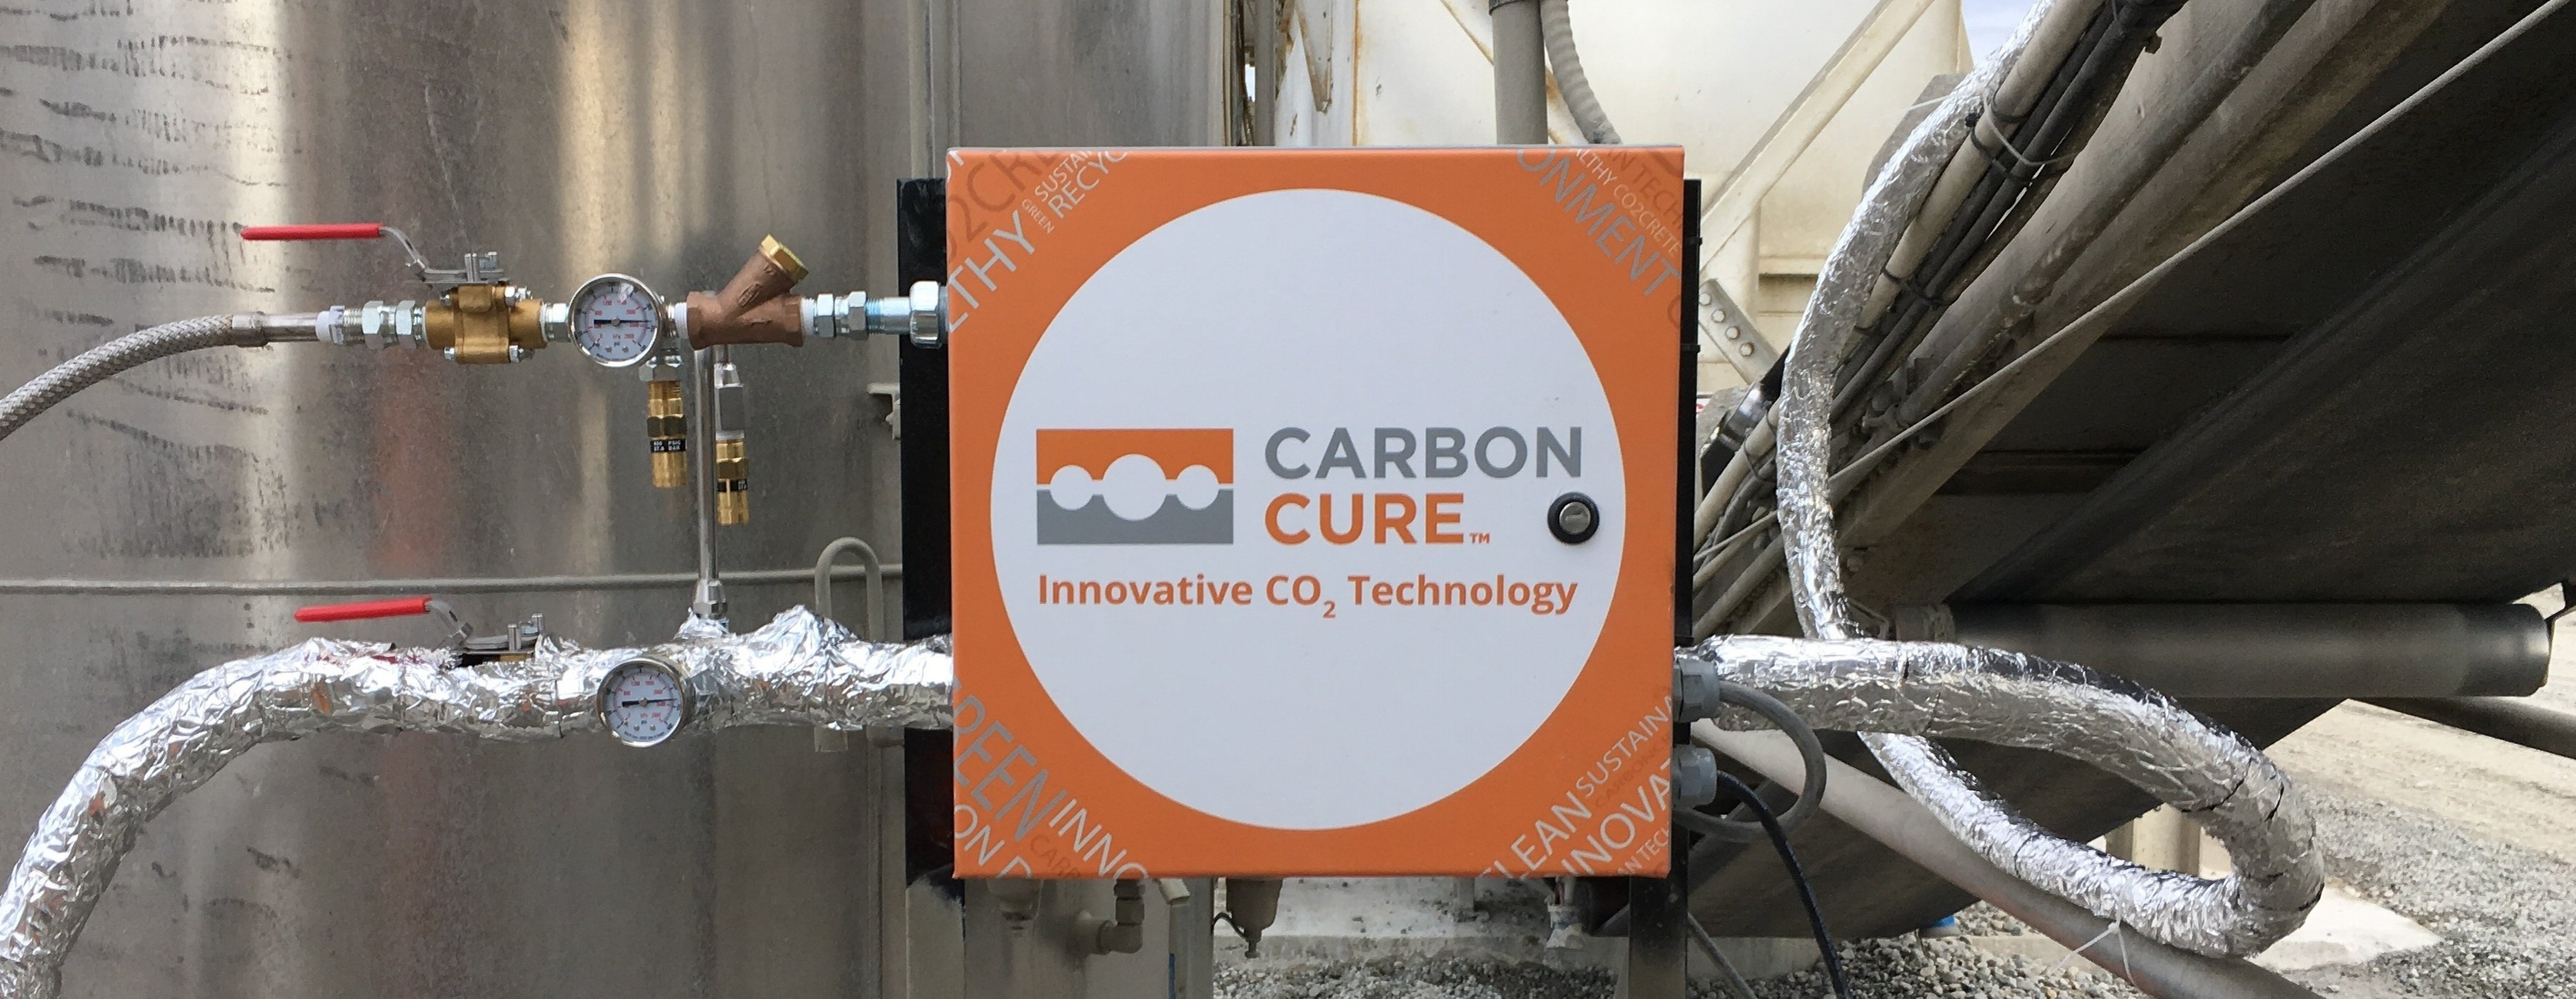 Carboncure And Roberts Oxygen Team Up To Offer Complete